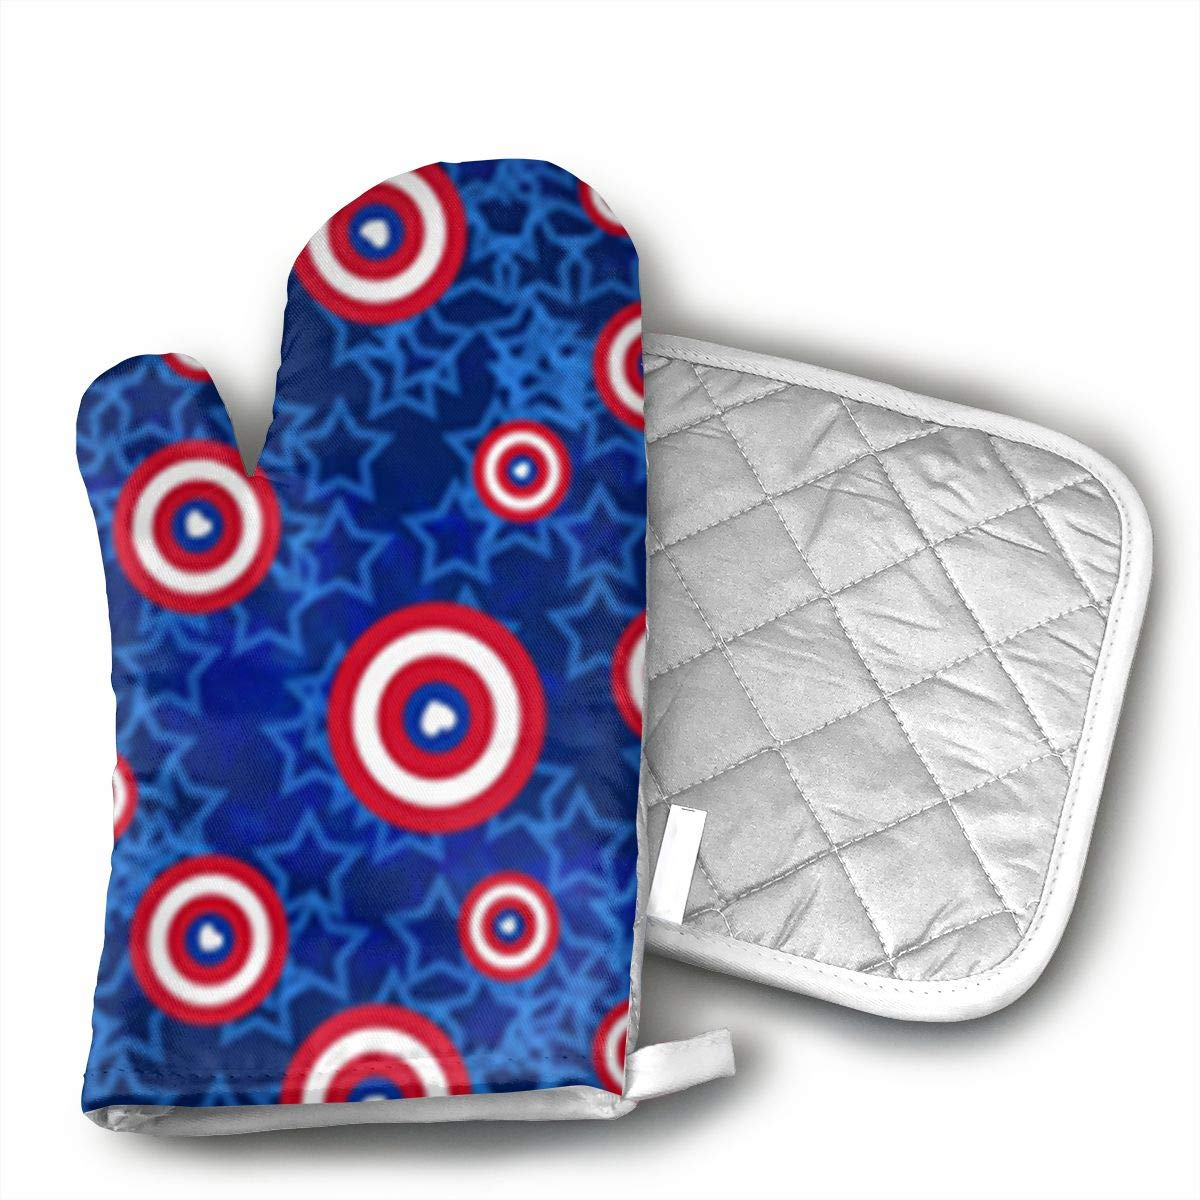 Jiqnajn6 Superhero Love Tiny Oven Mitts,Heat Resistant Oven Gloves, Safe Cooking Baking, Grilling, Barbecue, Machine Washable,Pot Holders.